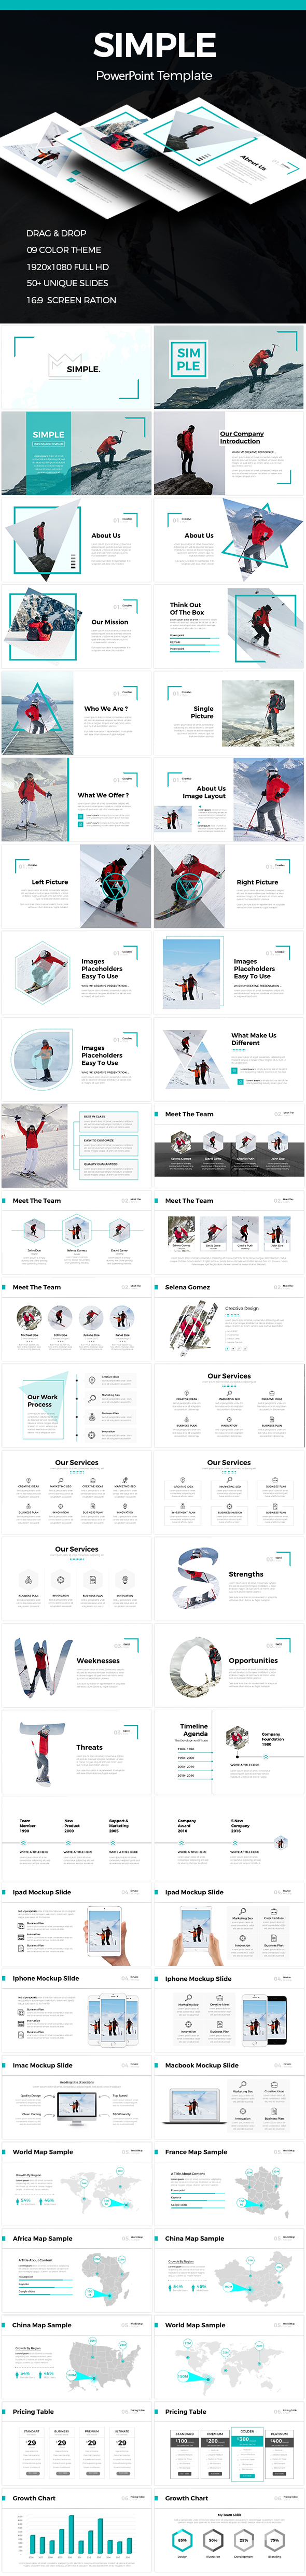 Simple - Clean Powerpoint Template